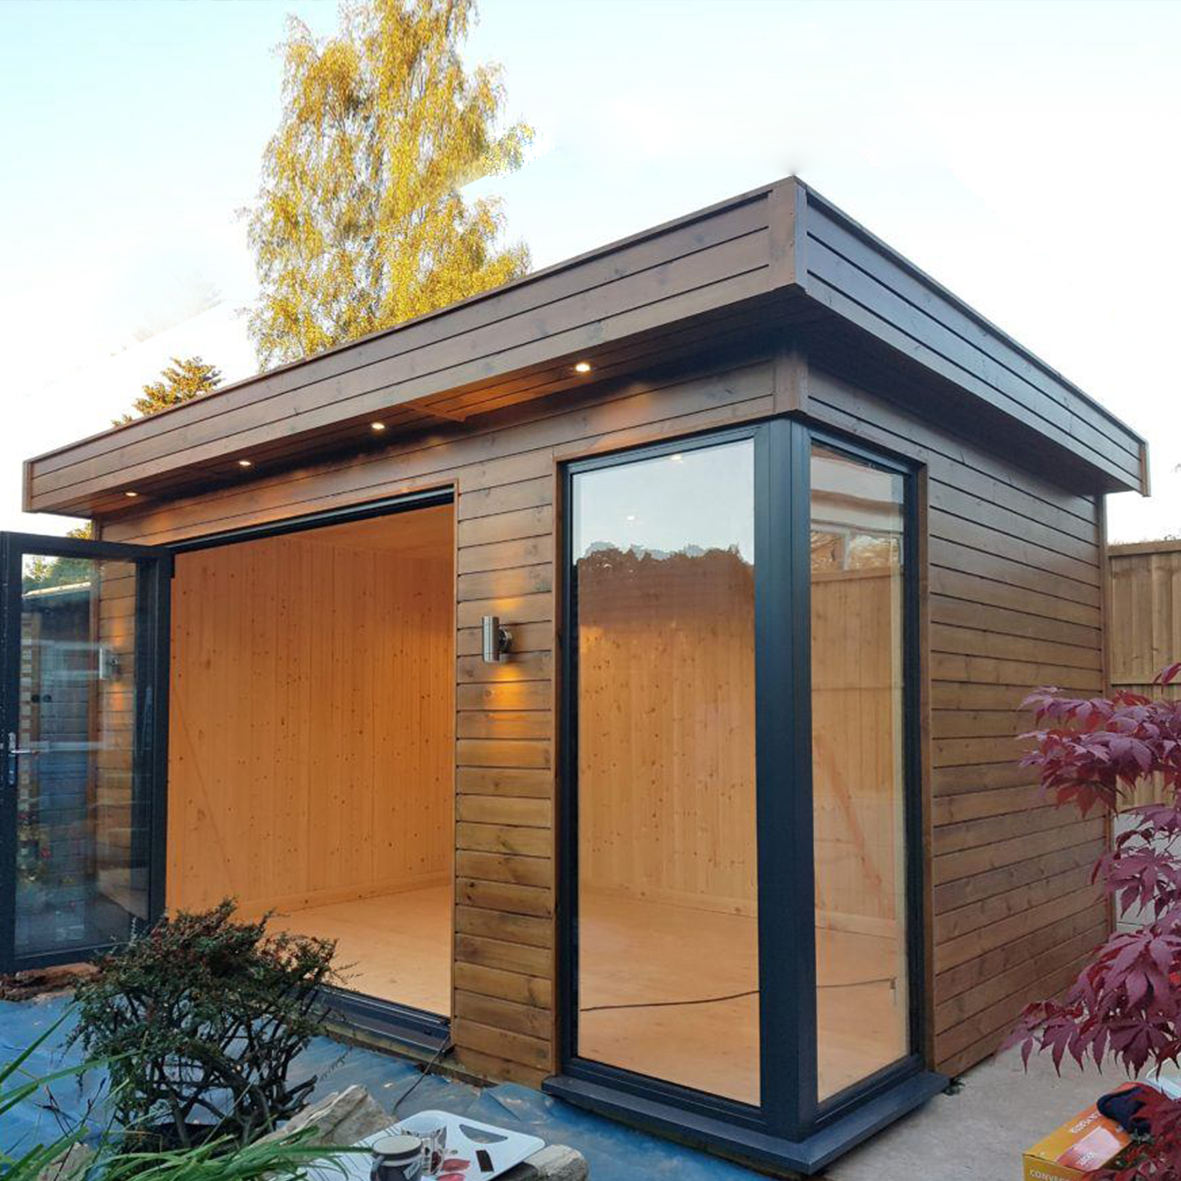 Prefab House shipping containers modular tiny wooden mobile house for sales